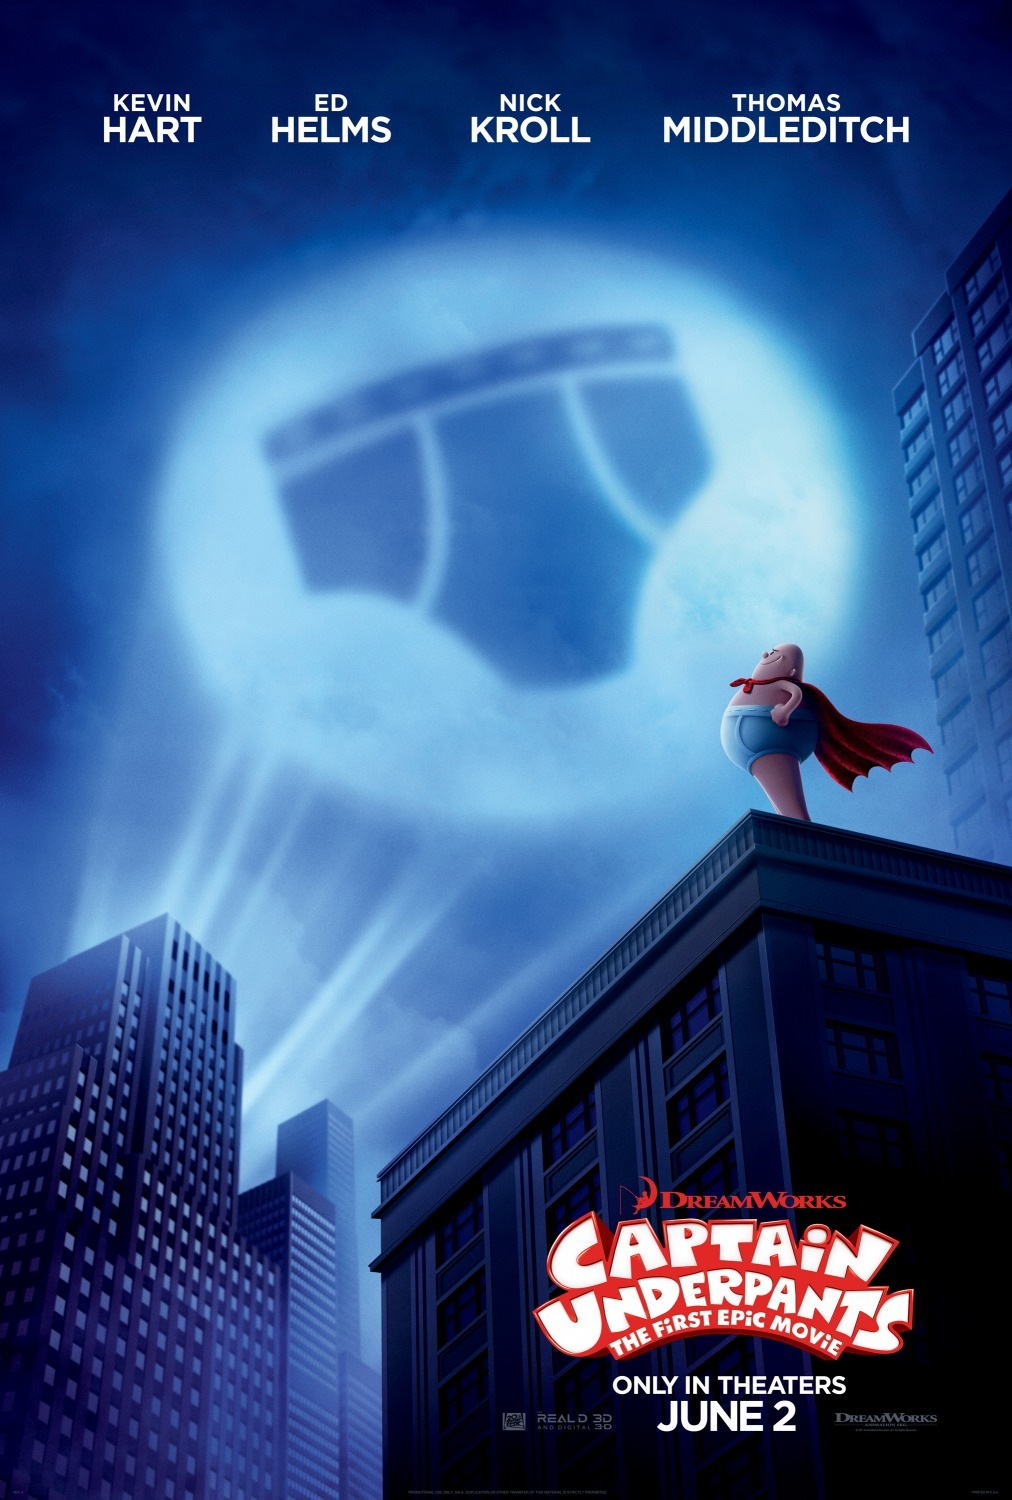 Captain Underpants: The First Epic Movie (2017) - Now Playing In Theaters